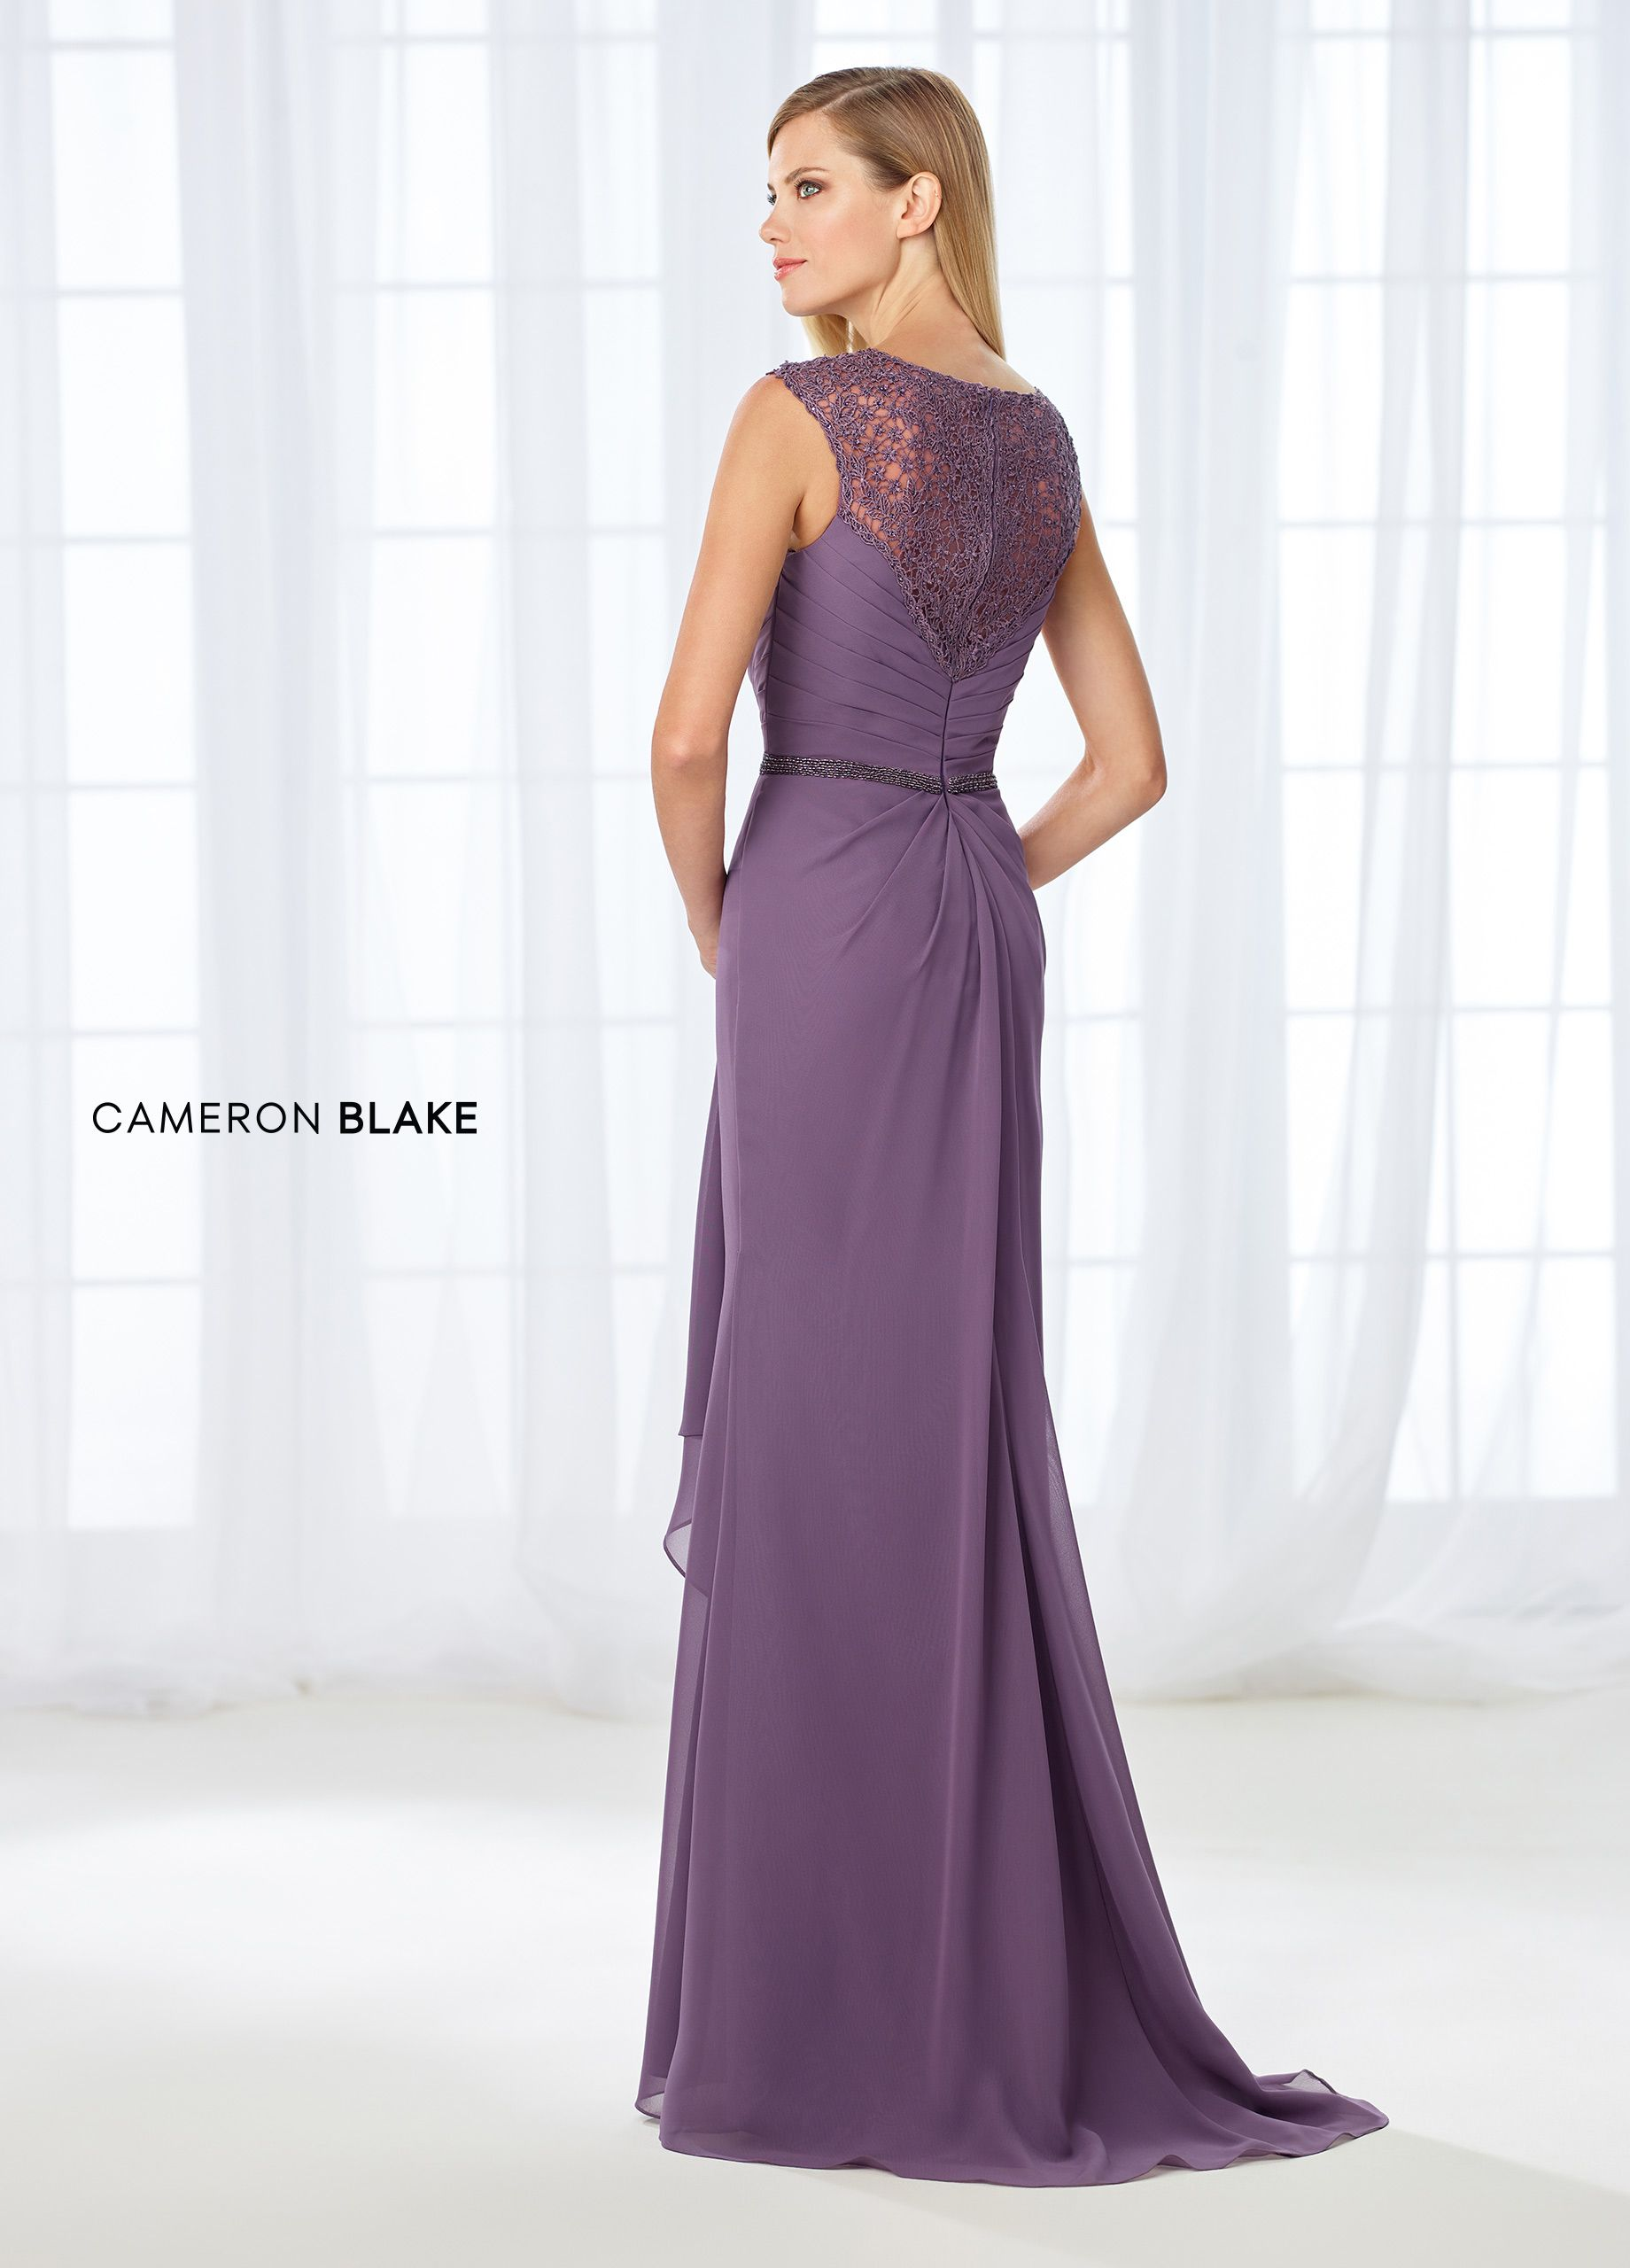 55937c0115c13 Cameron Blake 118665 - Perfectly pleated and draped, this sleeveless  chiffon and lace A-